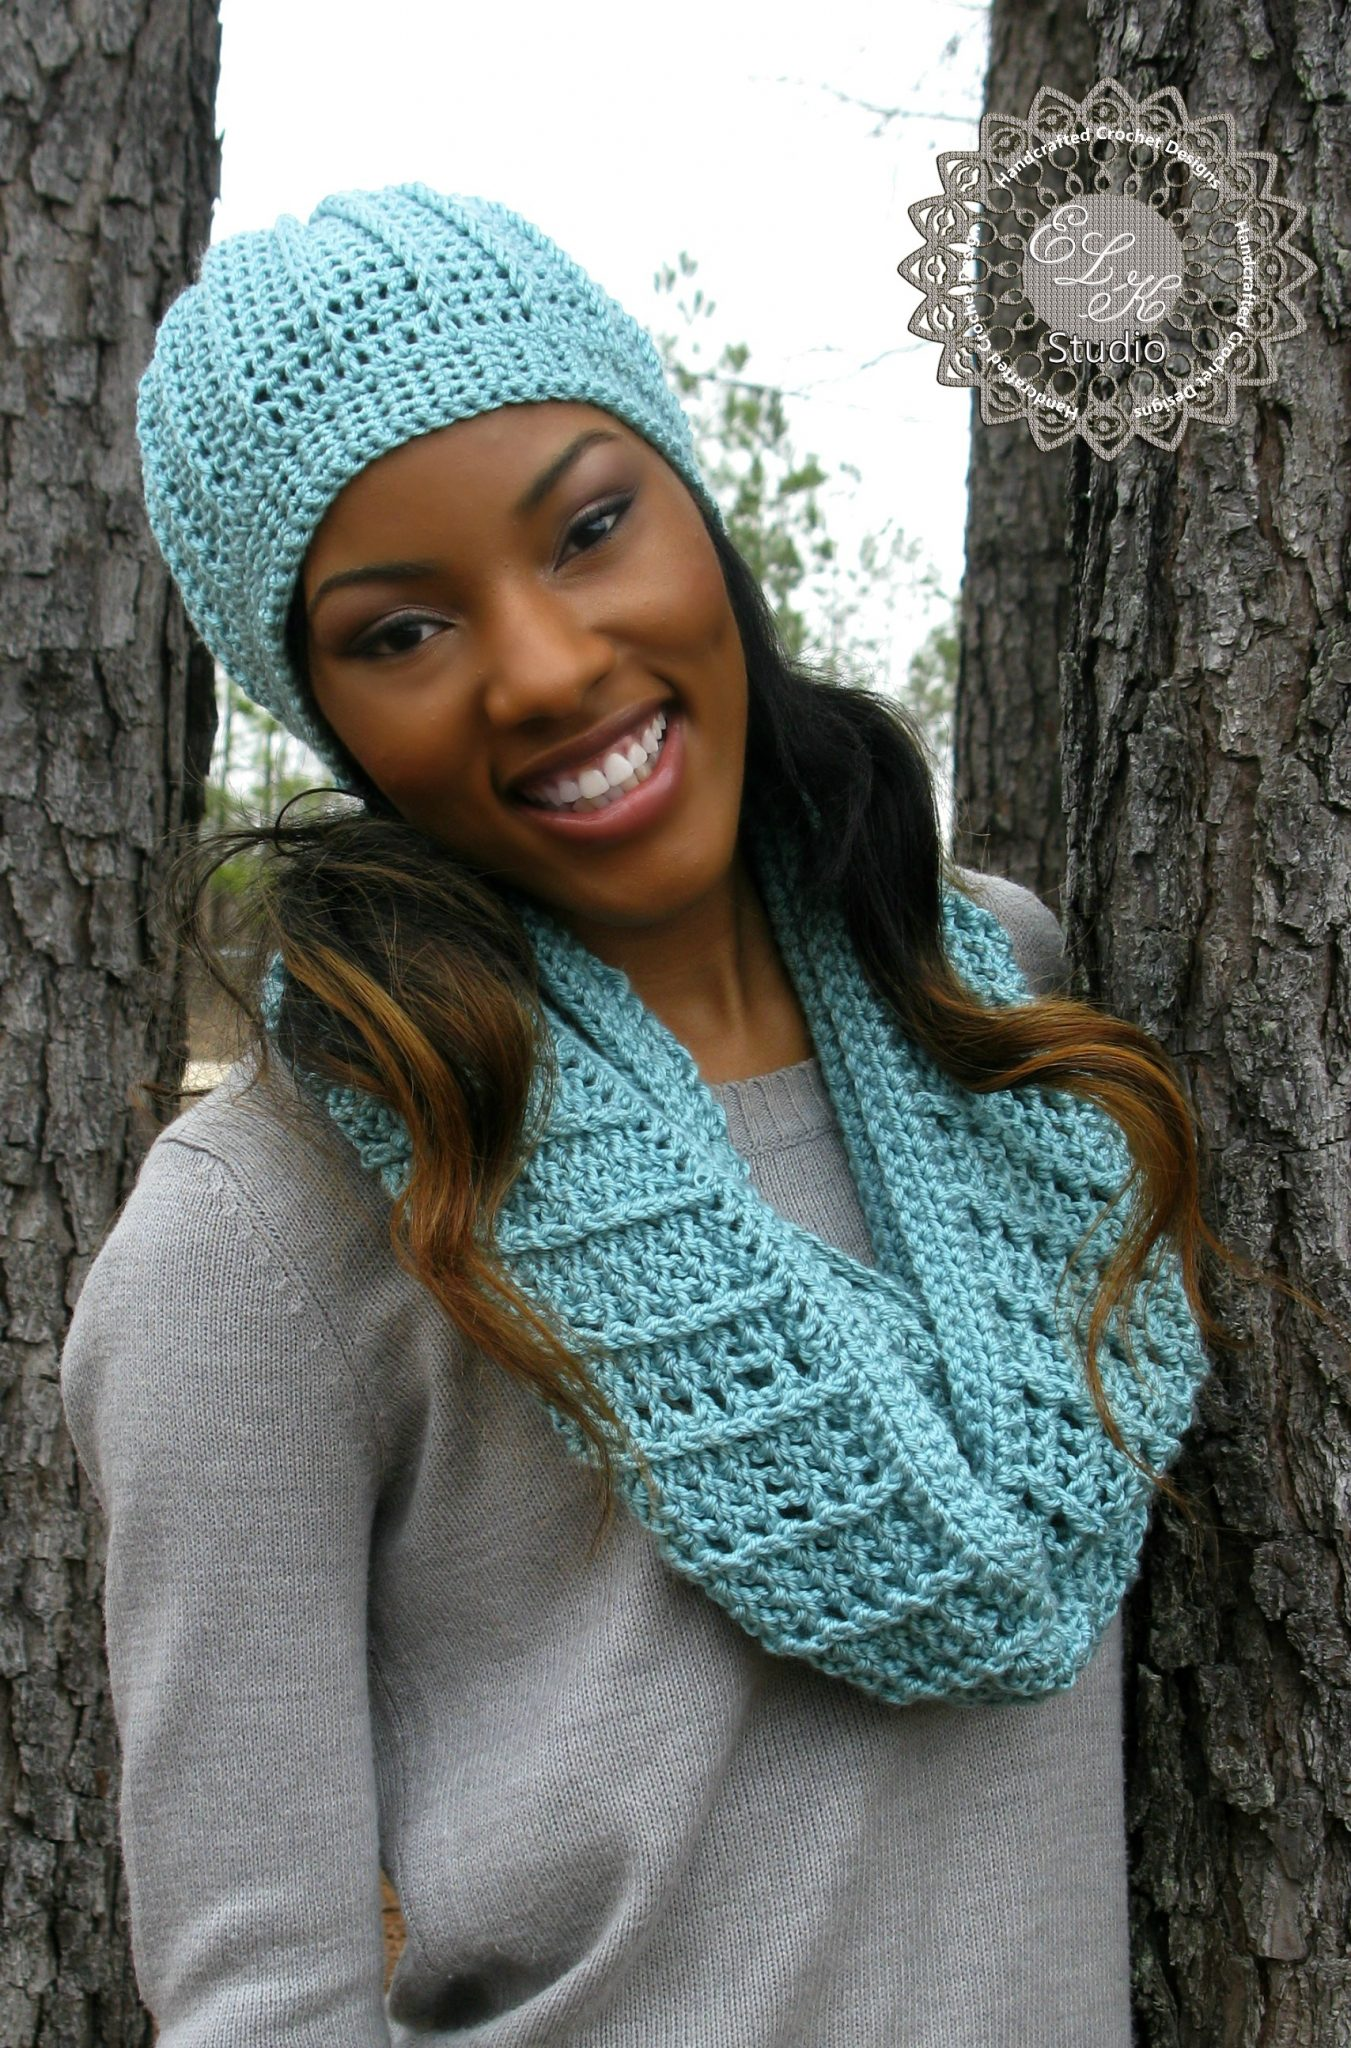 Crochet Patterns For Scarf And Hat : Country Appeal - A Free Crochet Infinity Scarf Pattern ...